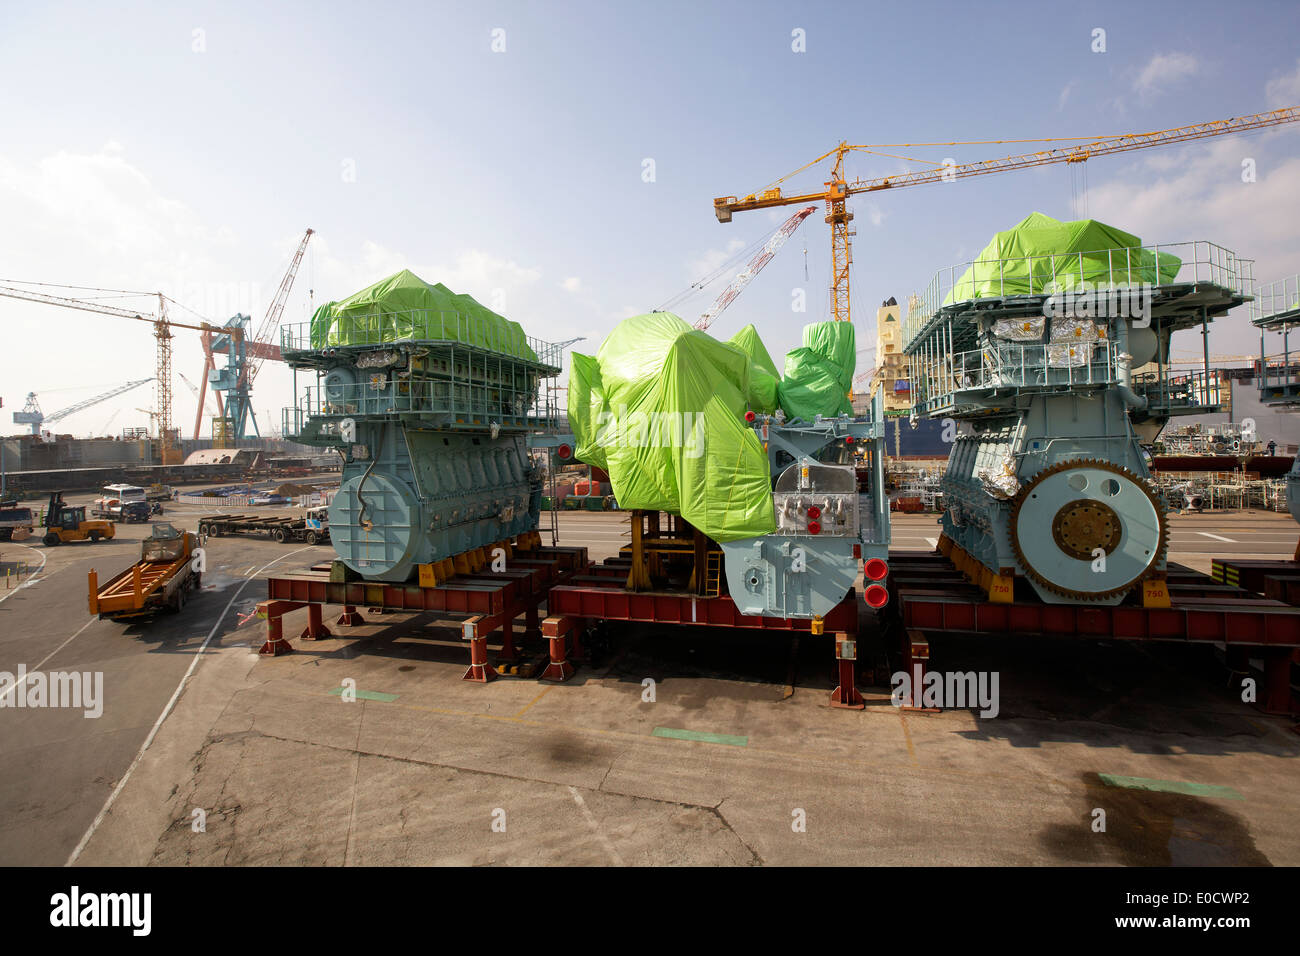 MAN two-stroke ship's engine, modular production at the largest shipyard in the world Hyundai Heavy Industries, HHI, in Ulsan, S - Stock Image